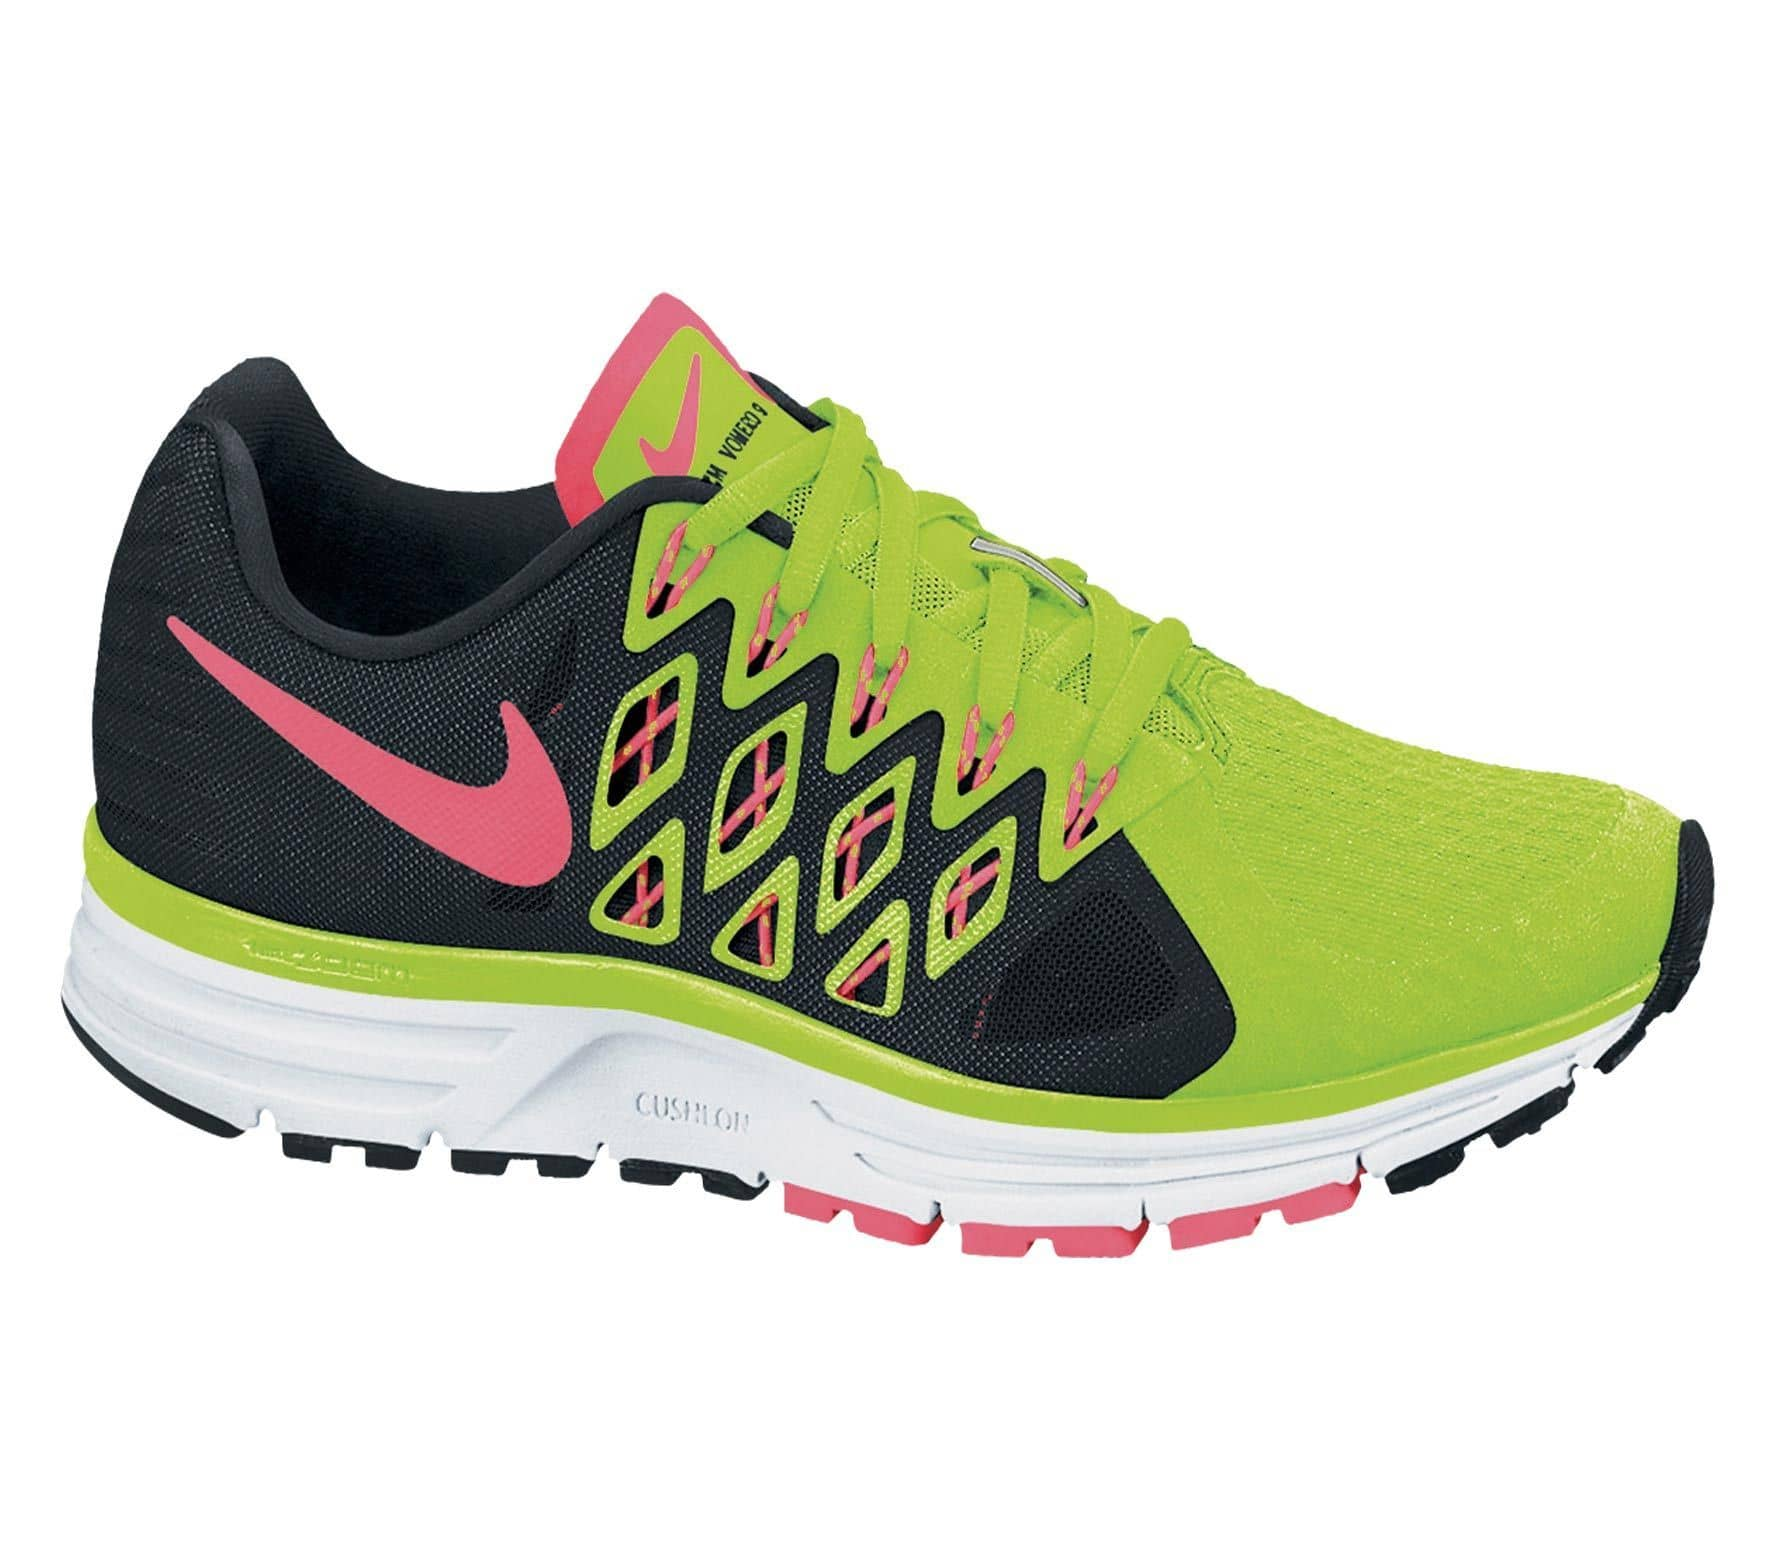 3ebe767ccc9 Nike - Zoom Vomero 9 women s running shoes (green) - buy it at the ...